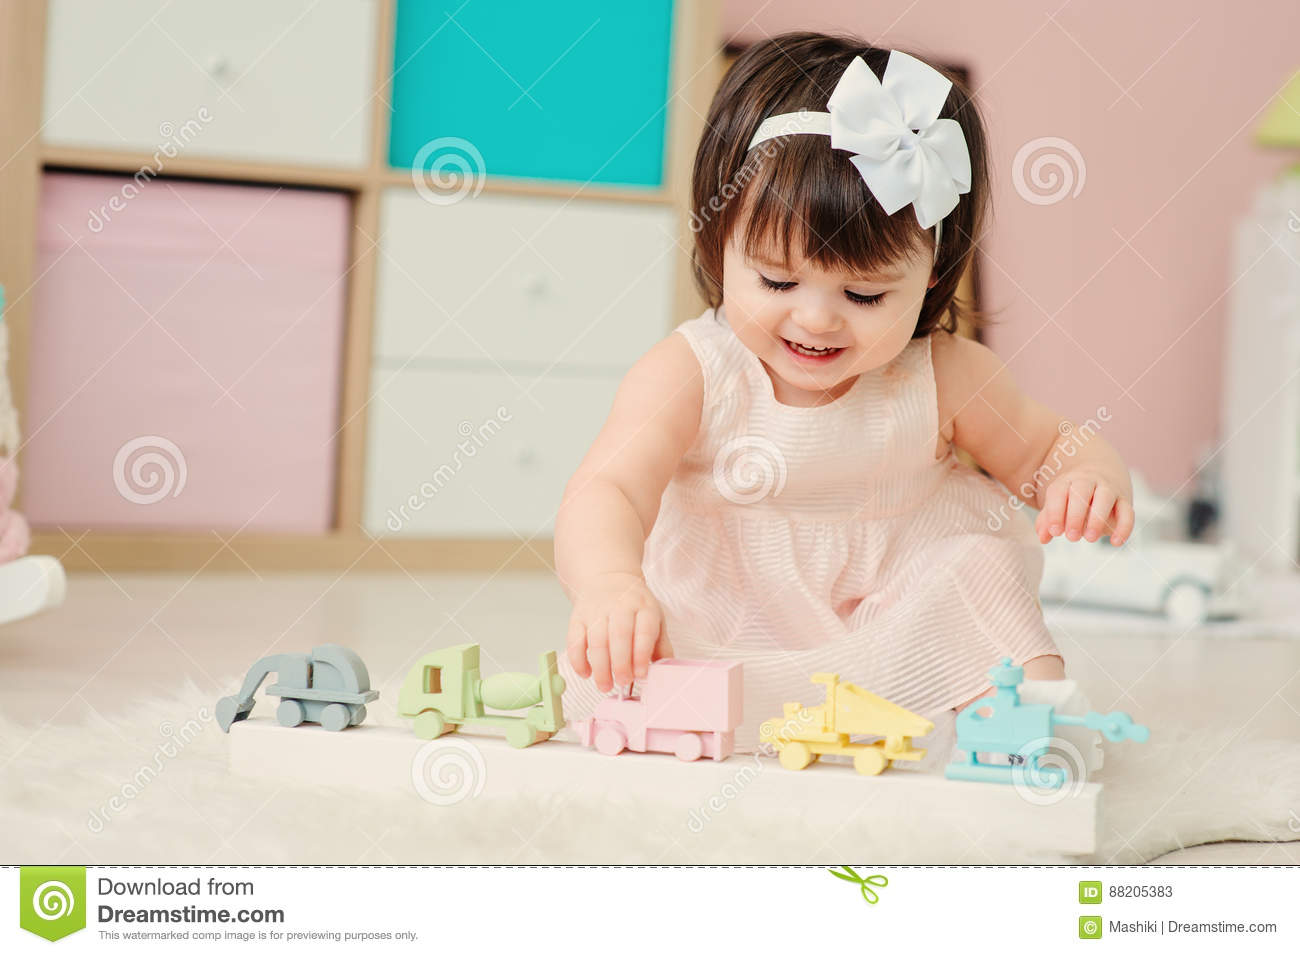 Cute Happy 1 Year Old Baby Girl Playing With Wooden Toys At Home